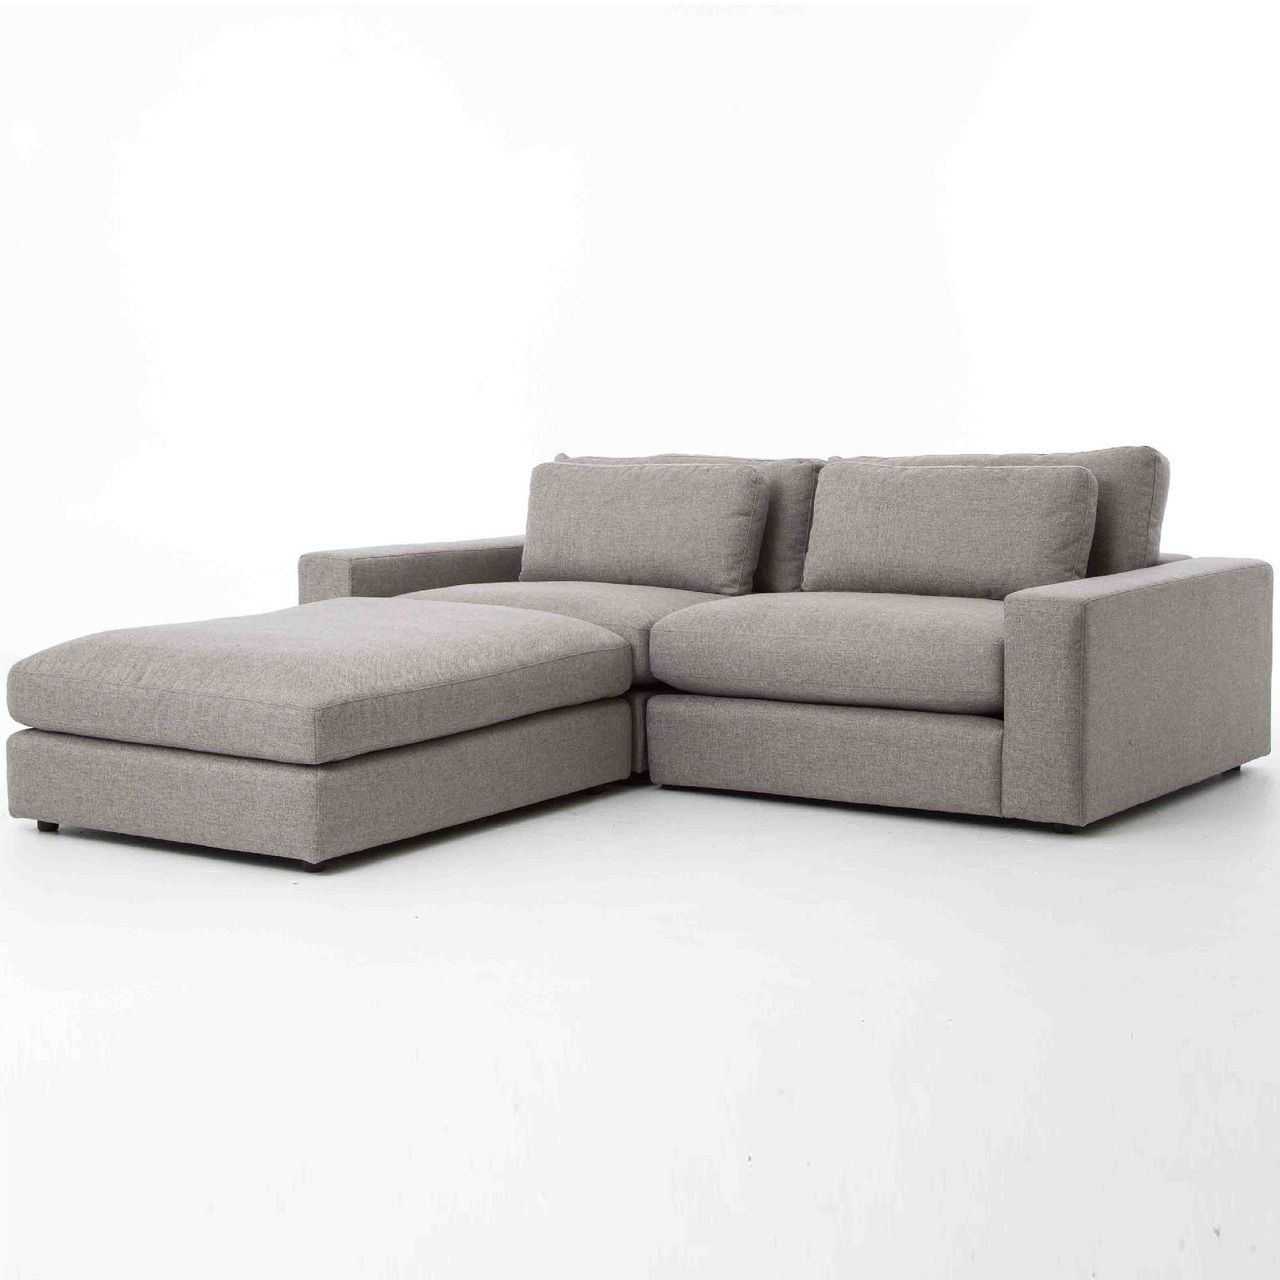 Bloor Gray Contemporary 3 Piece Small Sectional Sofa Small Sectional Sofa Sectional Sofa Sectional Sofa Sale